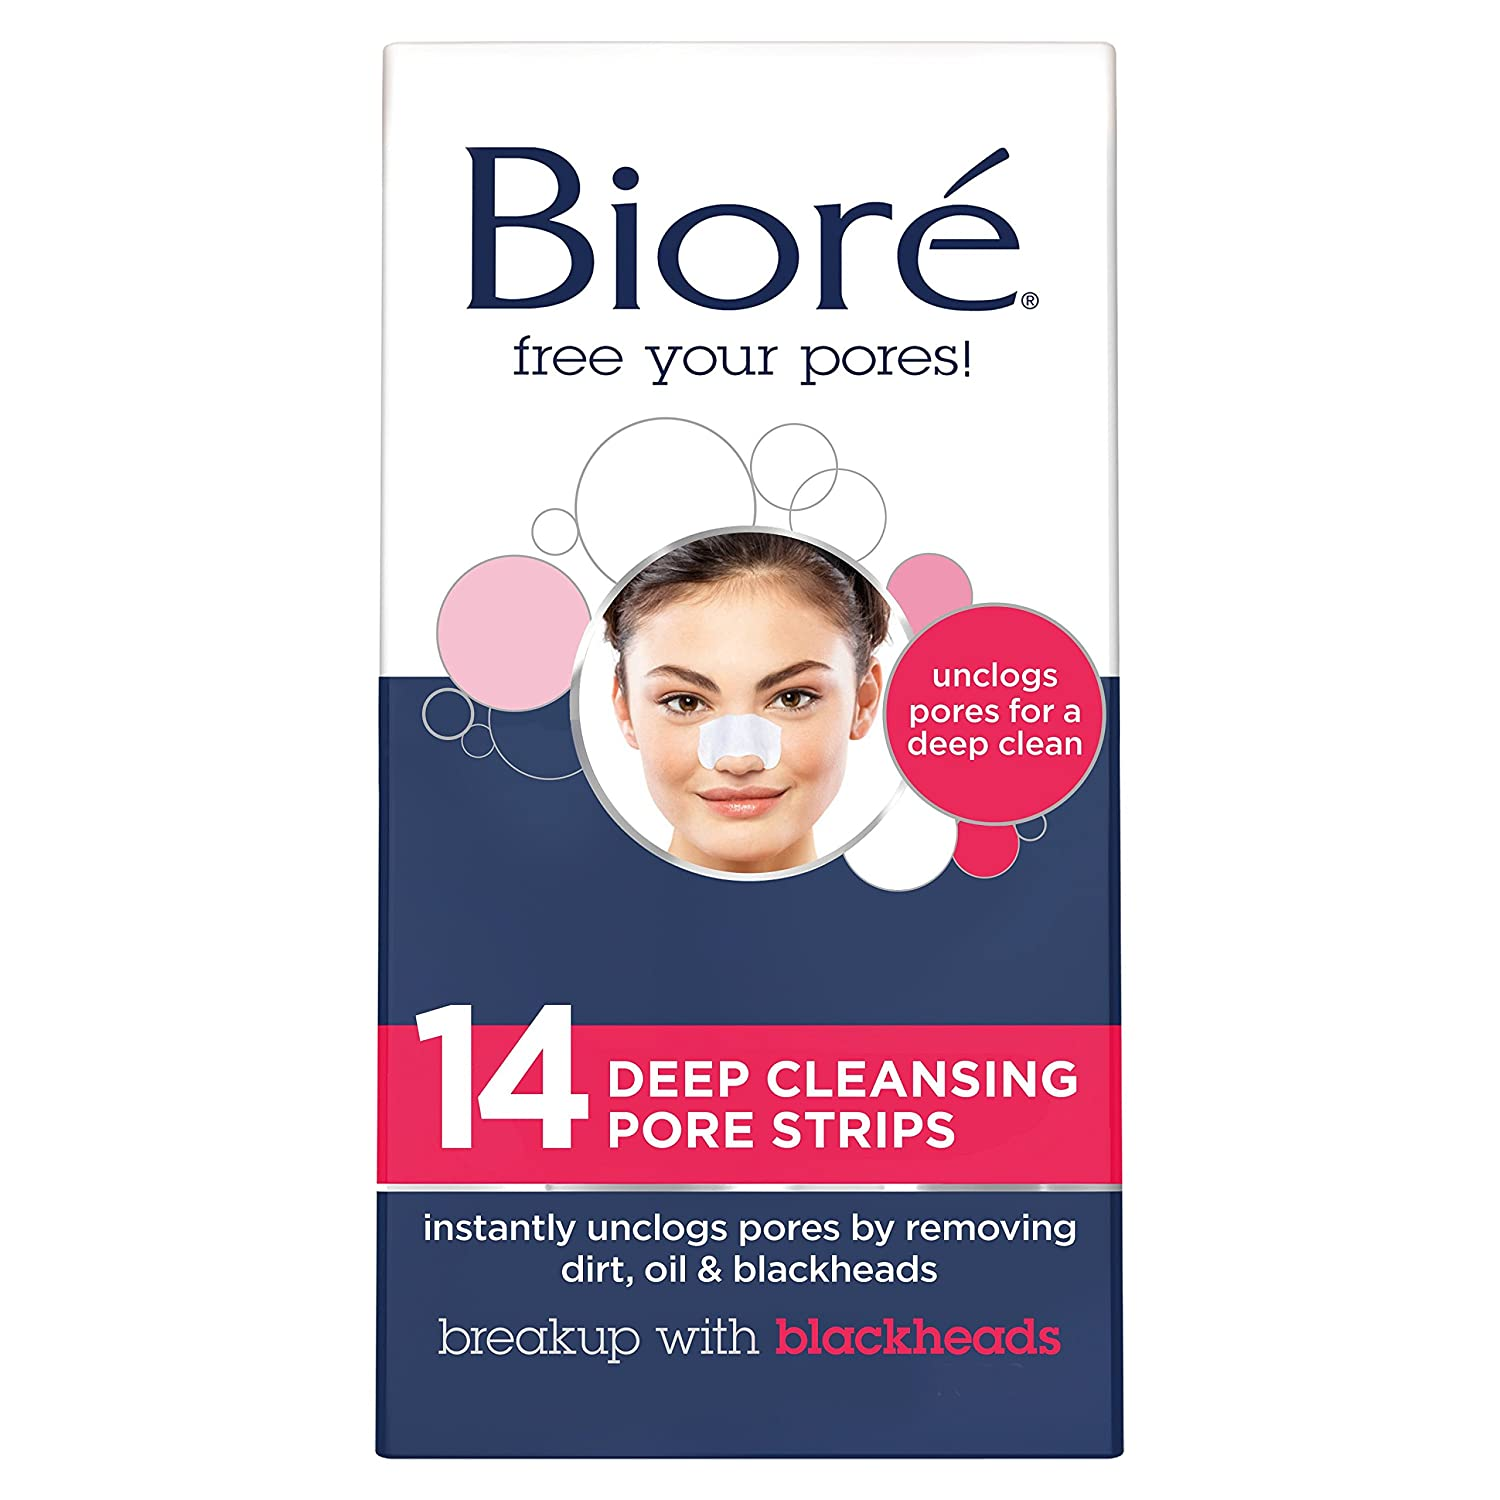 Biore Deep Cleansing Pore Strips, 14-Count KAO822171